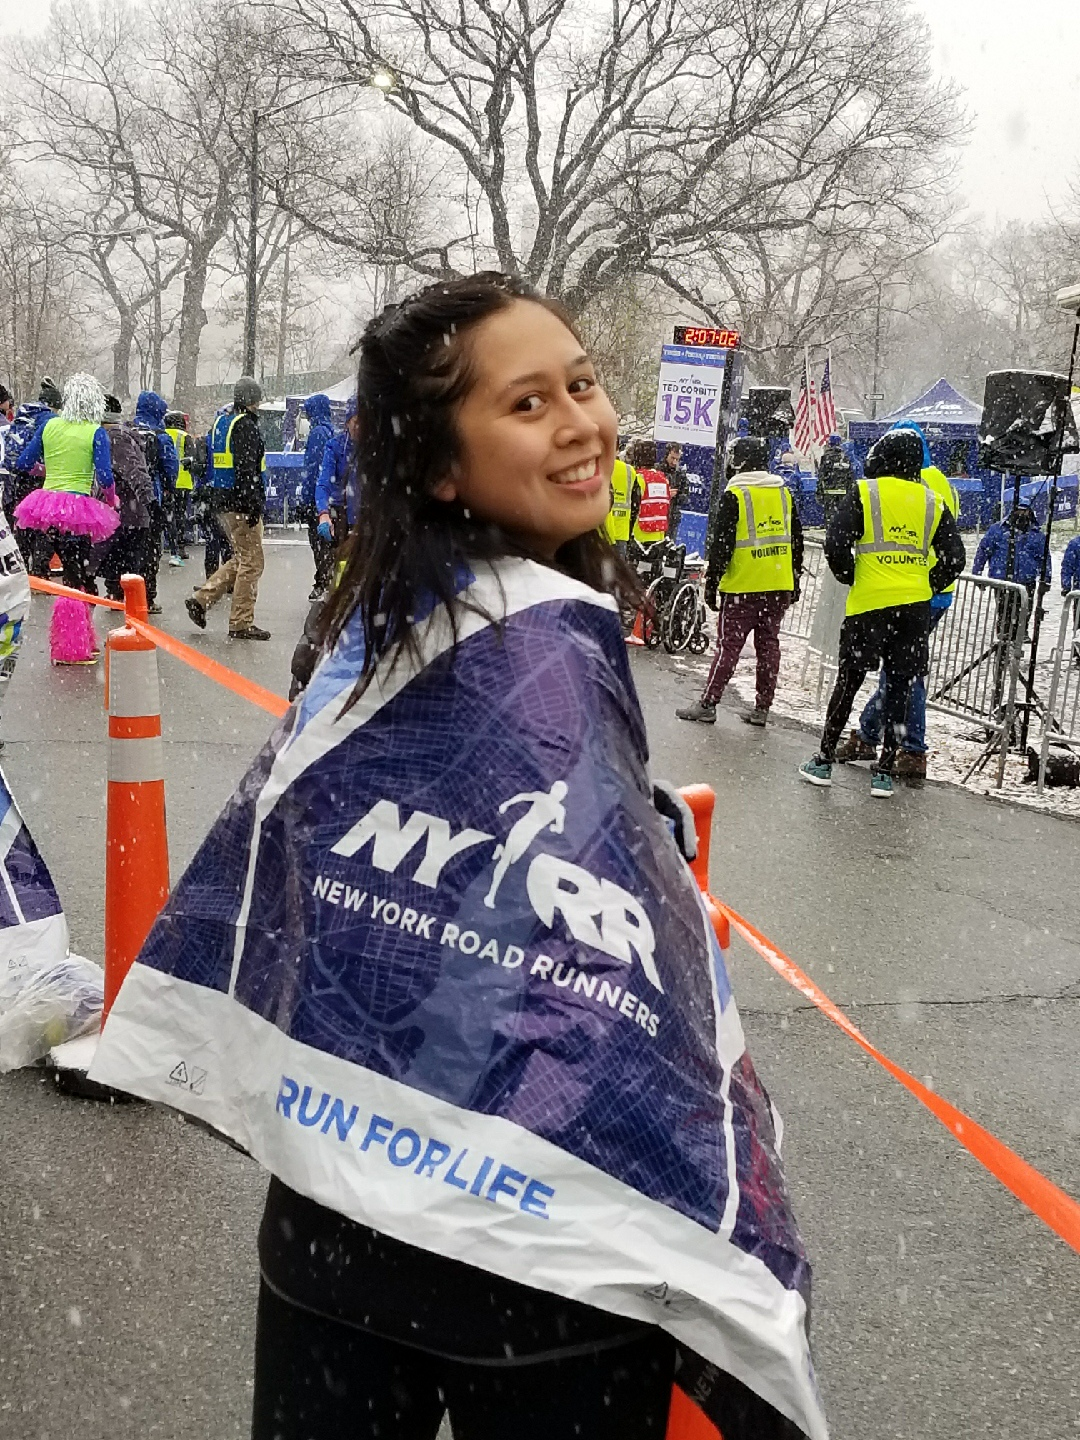 Nelli at the finish line of her 15K race here in NYC! # strongnotskinny